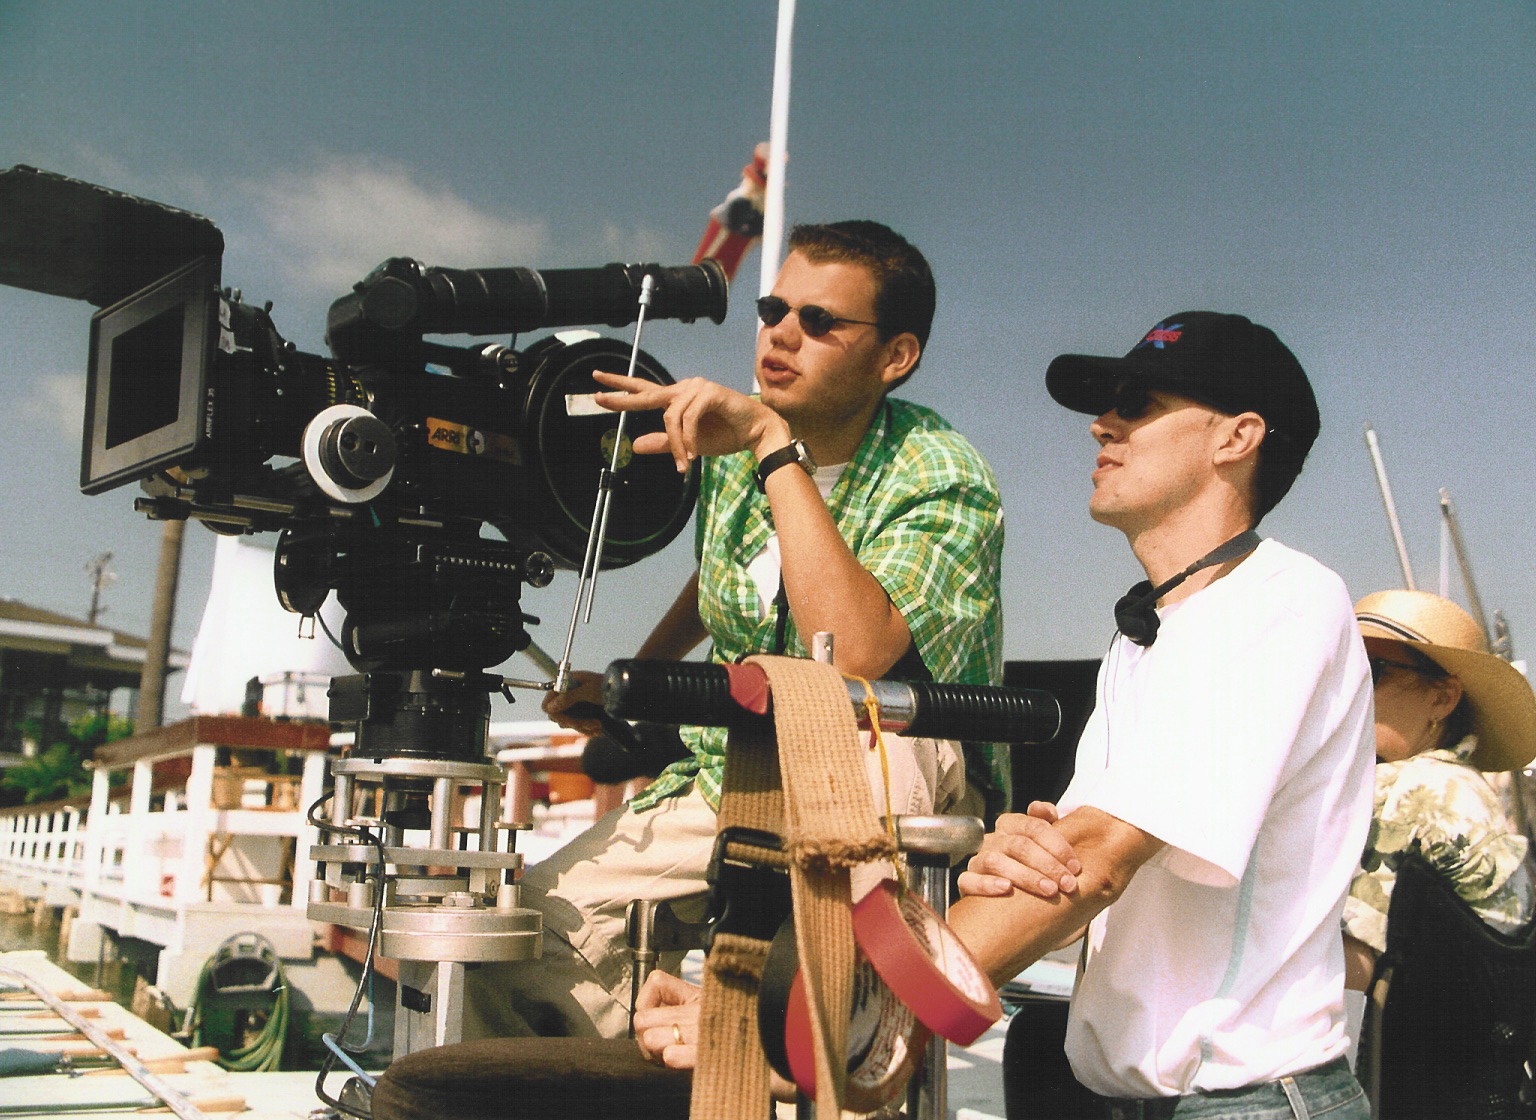 On location - DOUBLE CROSS (2003)